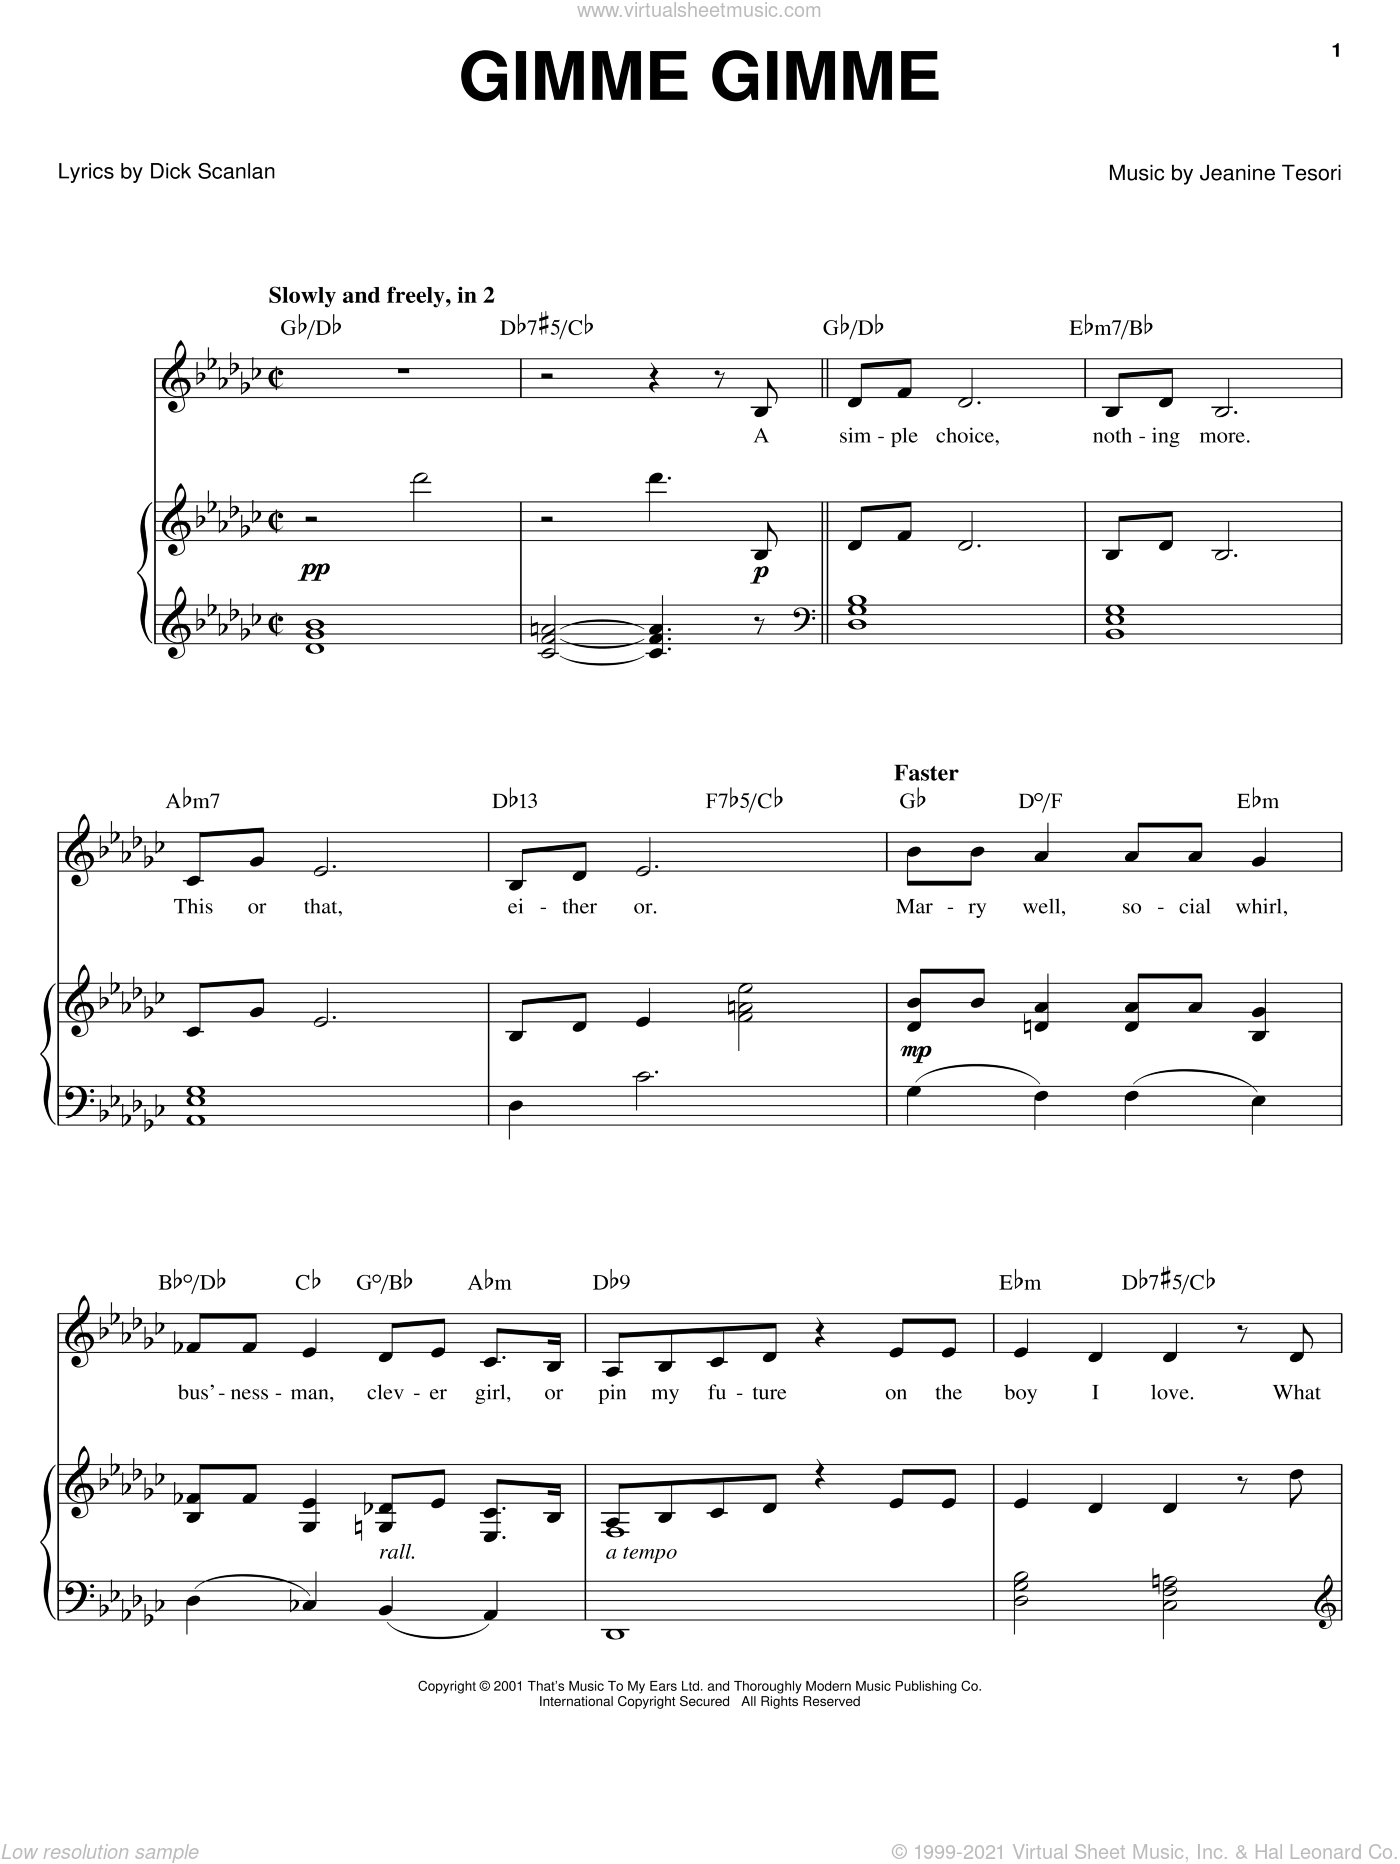 Gimme Gimme sheet music for voice, piano or guitar by Jeanine Tesori and Dick Scanlan. Score Image Preview.